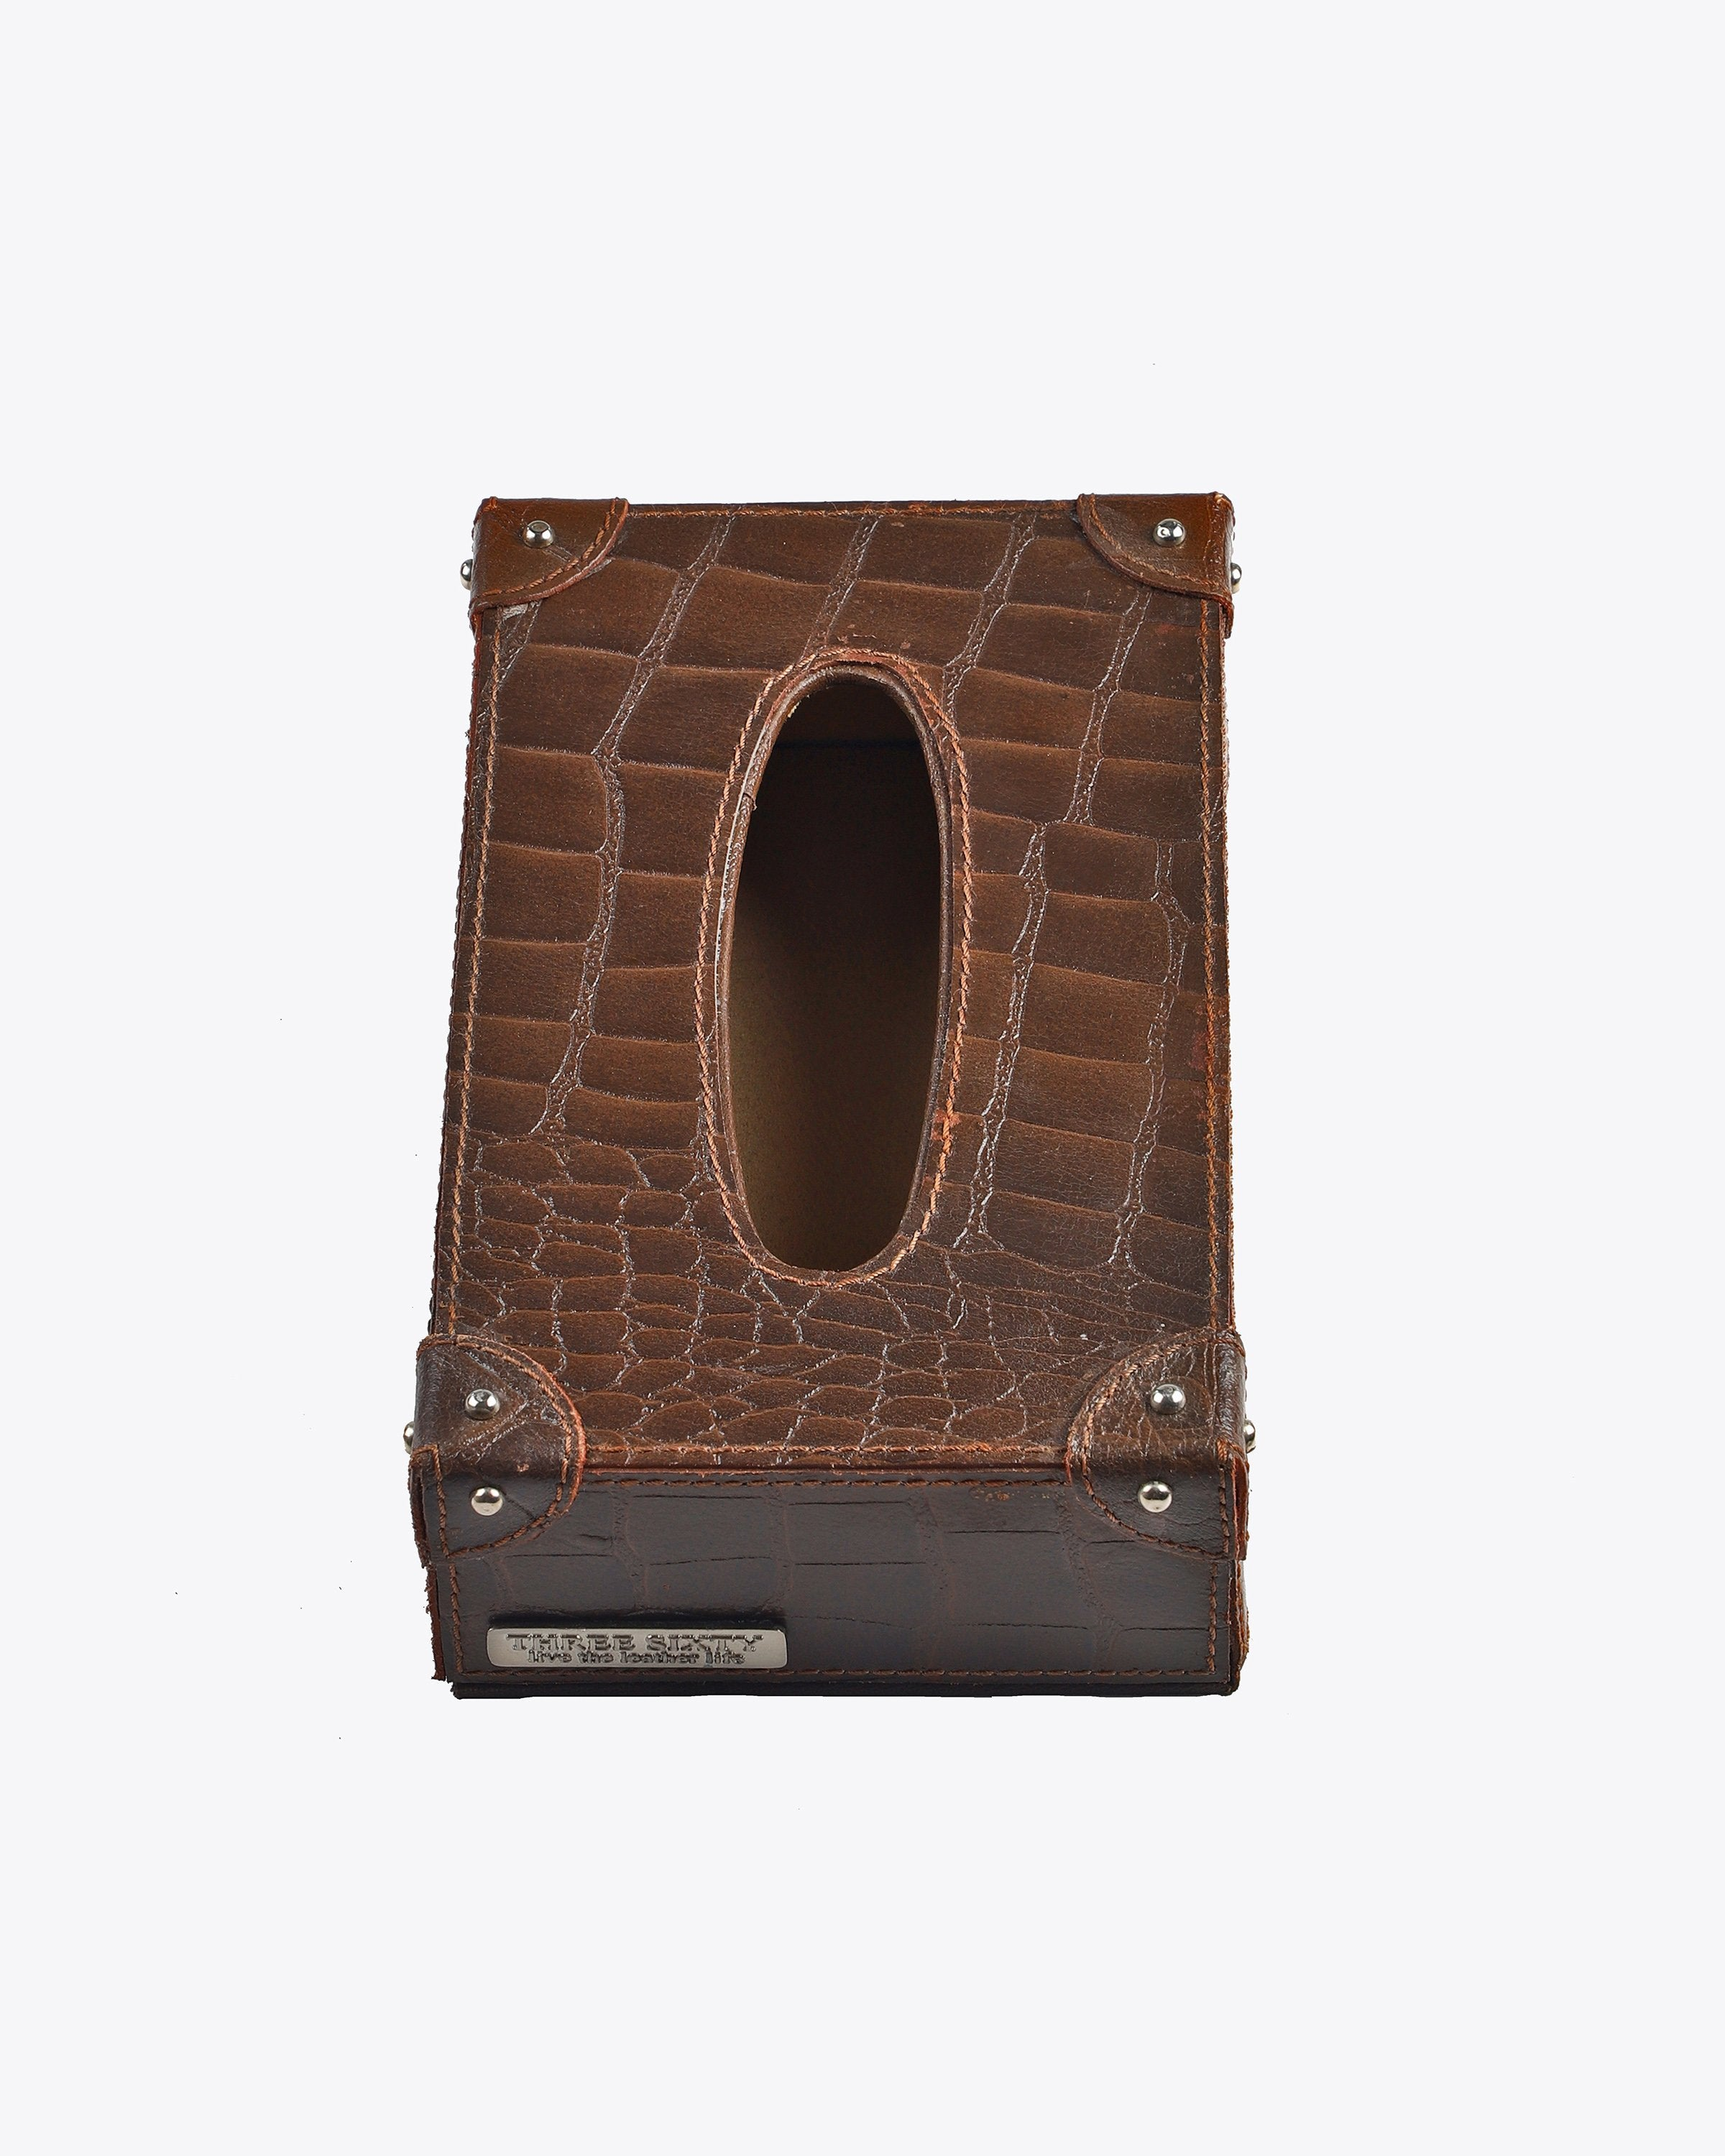 Antony Brown Leather Tissue Box ANGIE KRIPALANI DESIGN-ANGIE HOMES- ANGIES INDIA